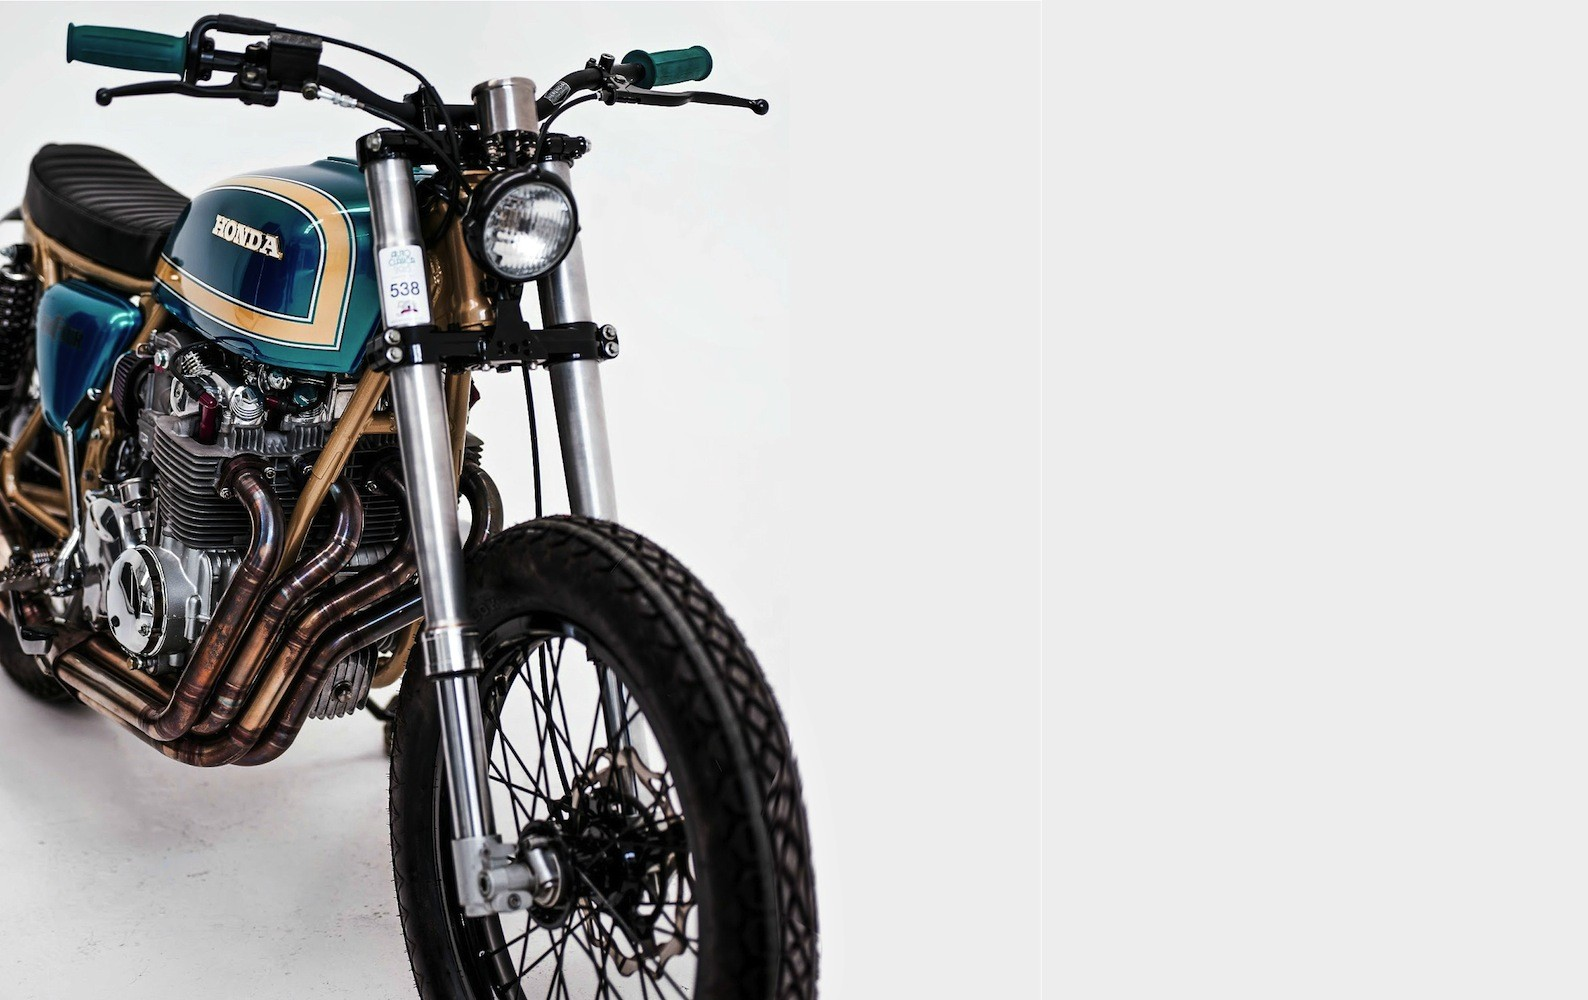 1982 Yamaha Virago 750 furthermore Honda Cb550 Scrambler By Herencia Custom Garage together with Caferacerforsale besides Harley Xl 1200c Scrambler By Hageman furthermore Watch. on yamaha xv750